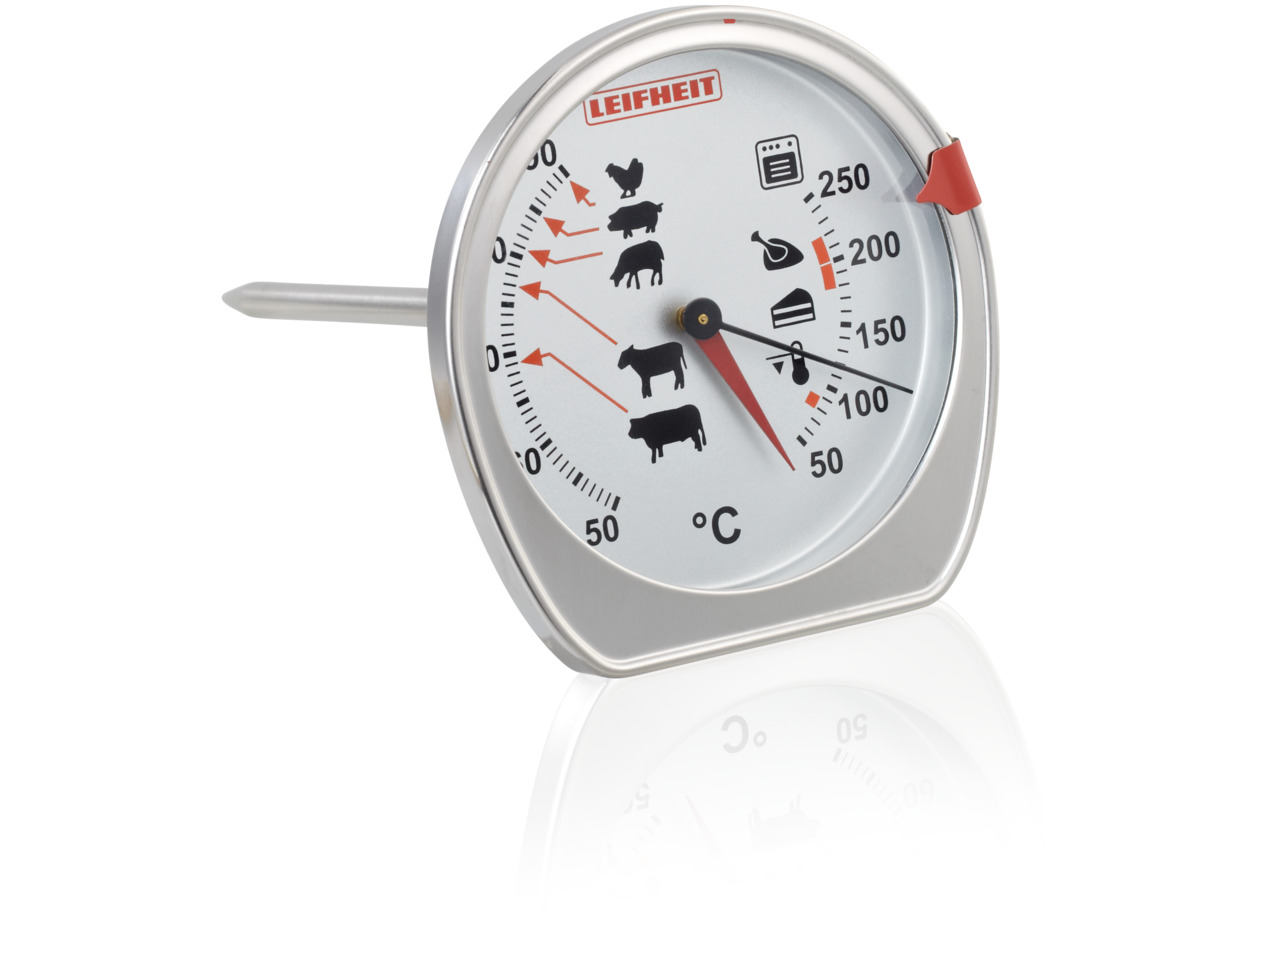 LEIFHEIT 3096 MEAT-OVEN THERMOMETER